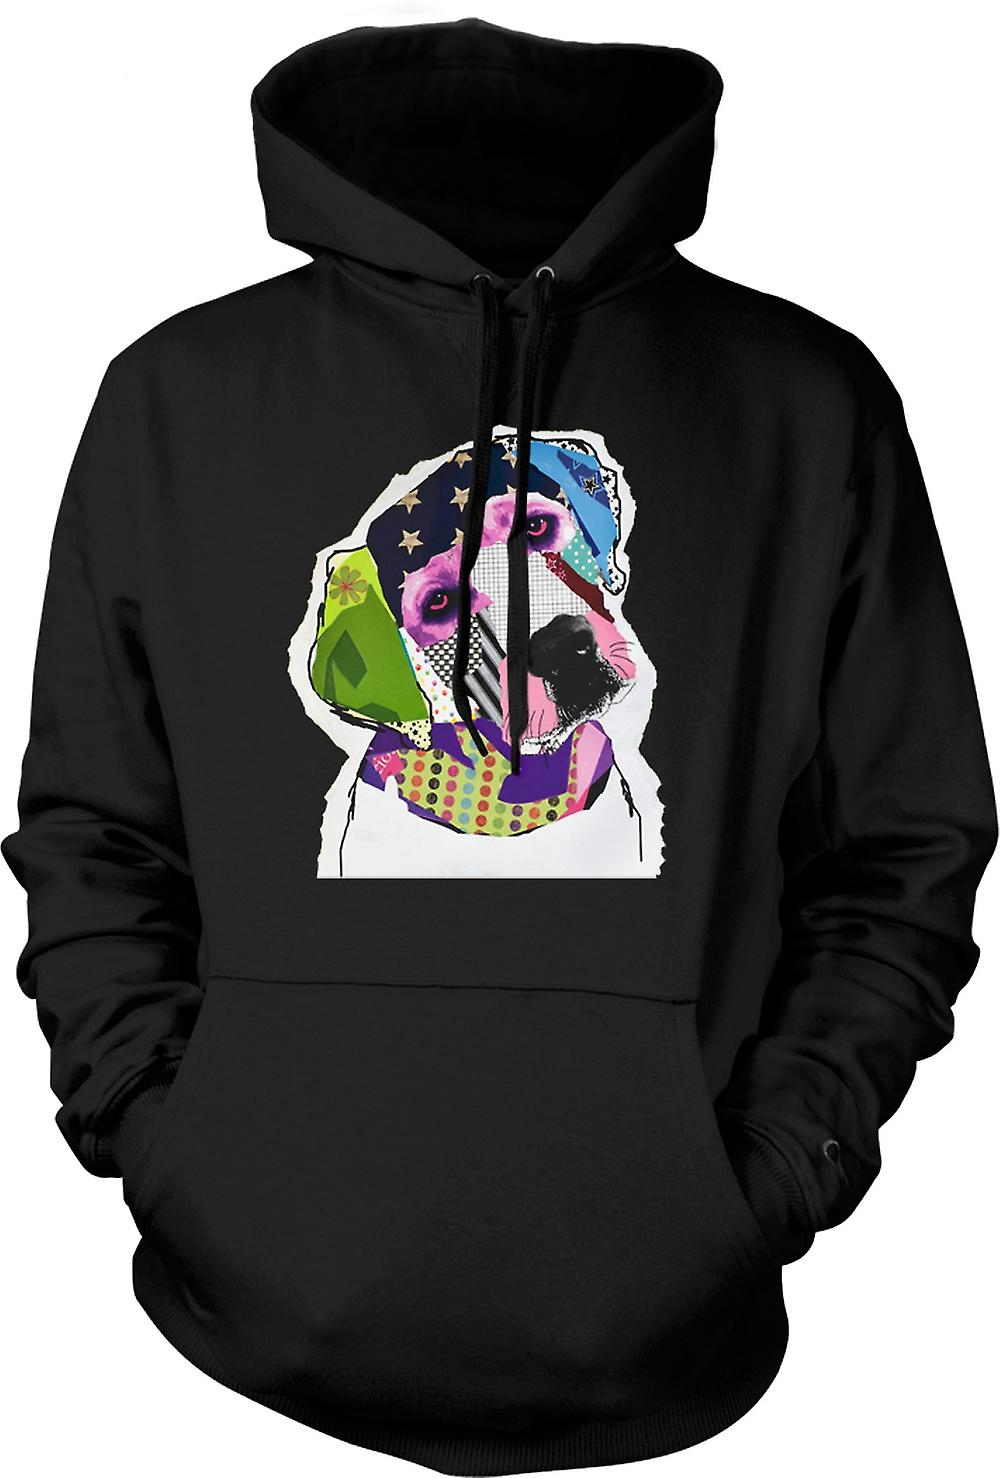 Mens-Hoodie - Labrador - Cool - Pop Art - Freisteller